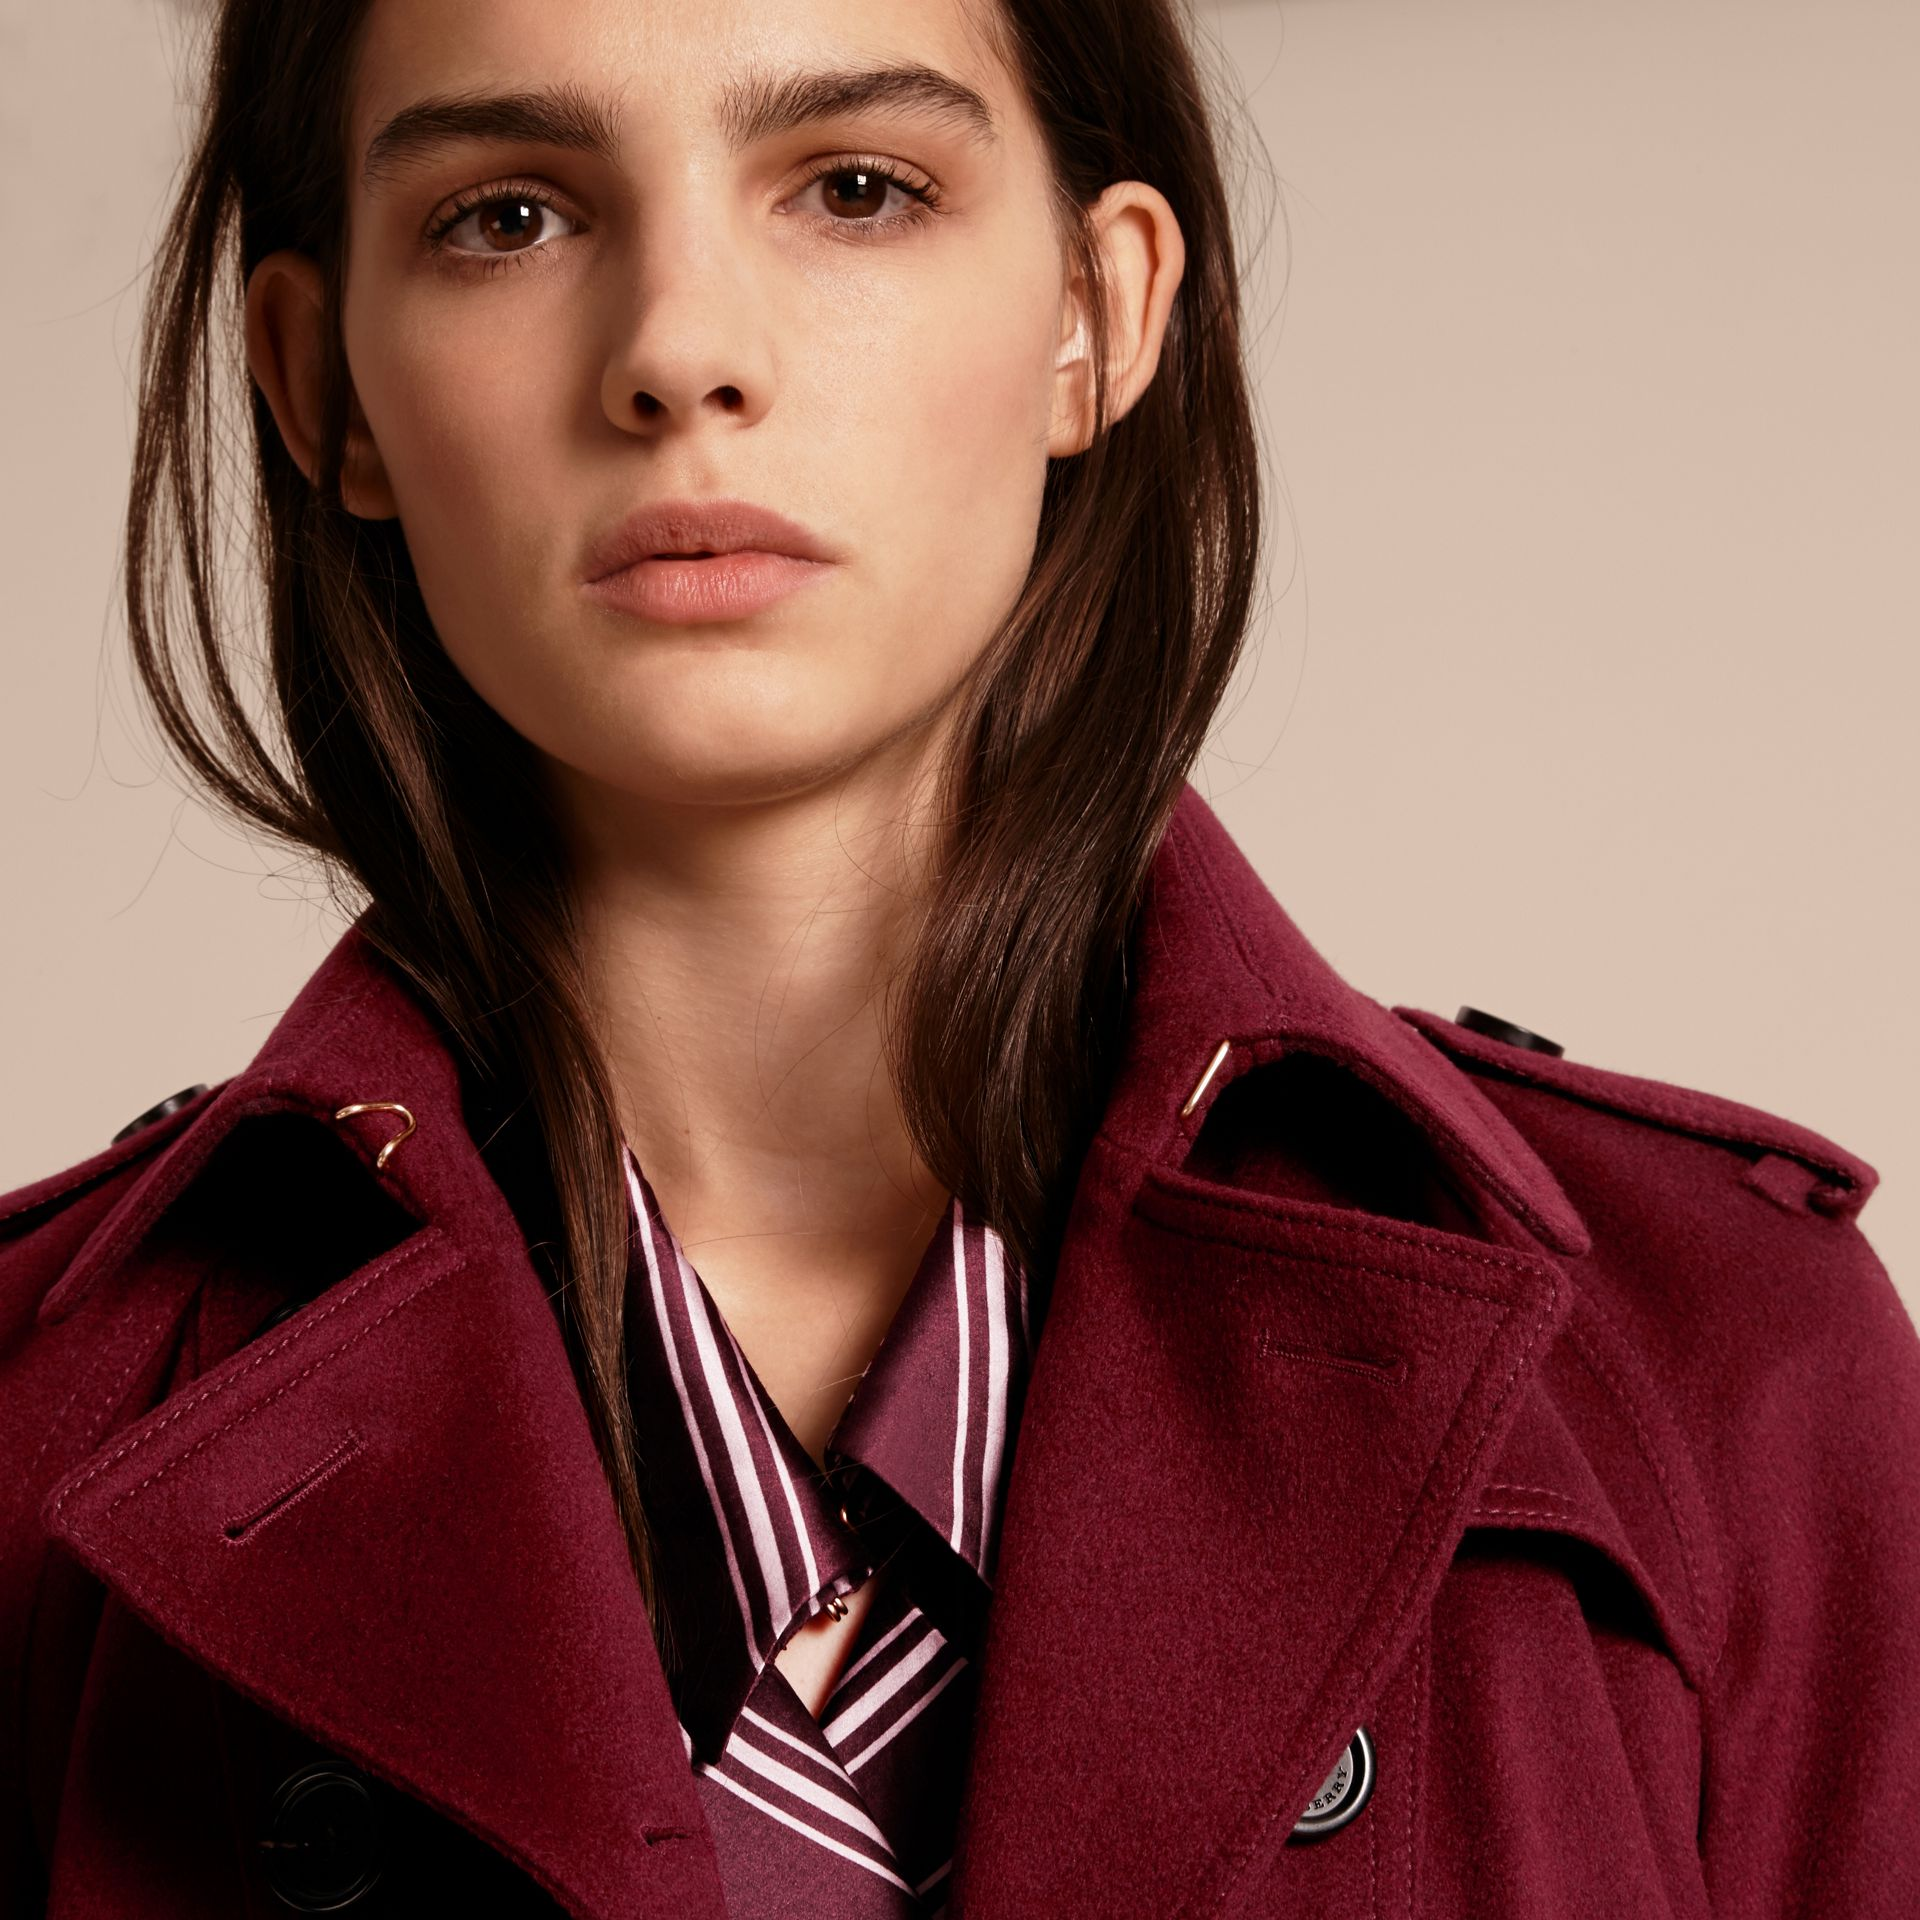 Burgundy Cashmere Trench Coat with Puff Sleeves Burgundy - gallery image 5